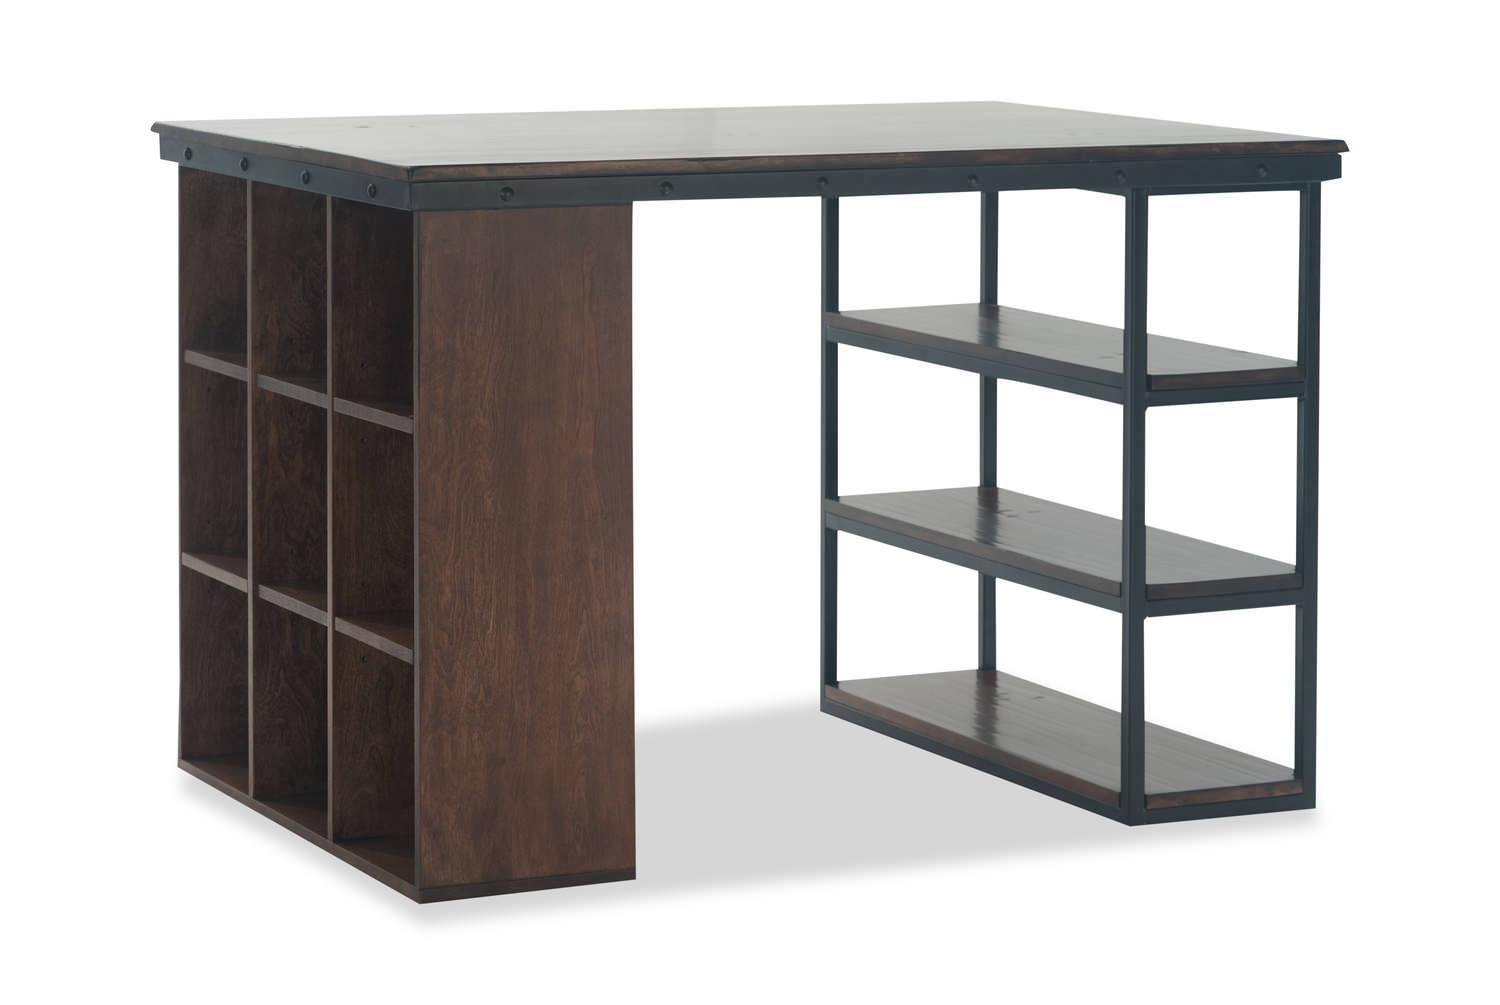 Pembroke Project Table with 1 Wooden Bookcase and 1 Wood and Metal